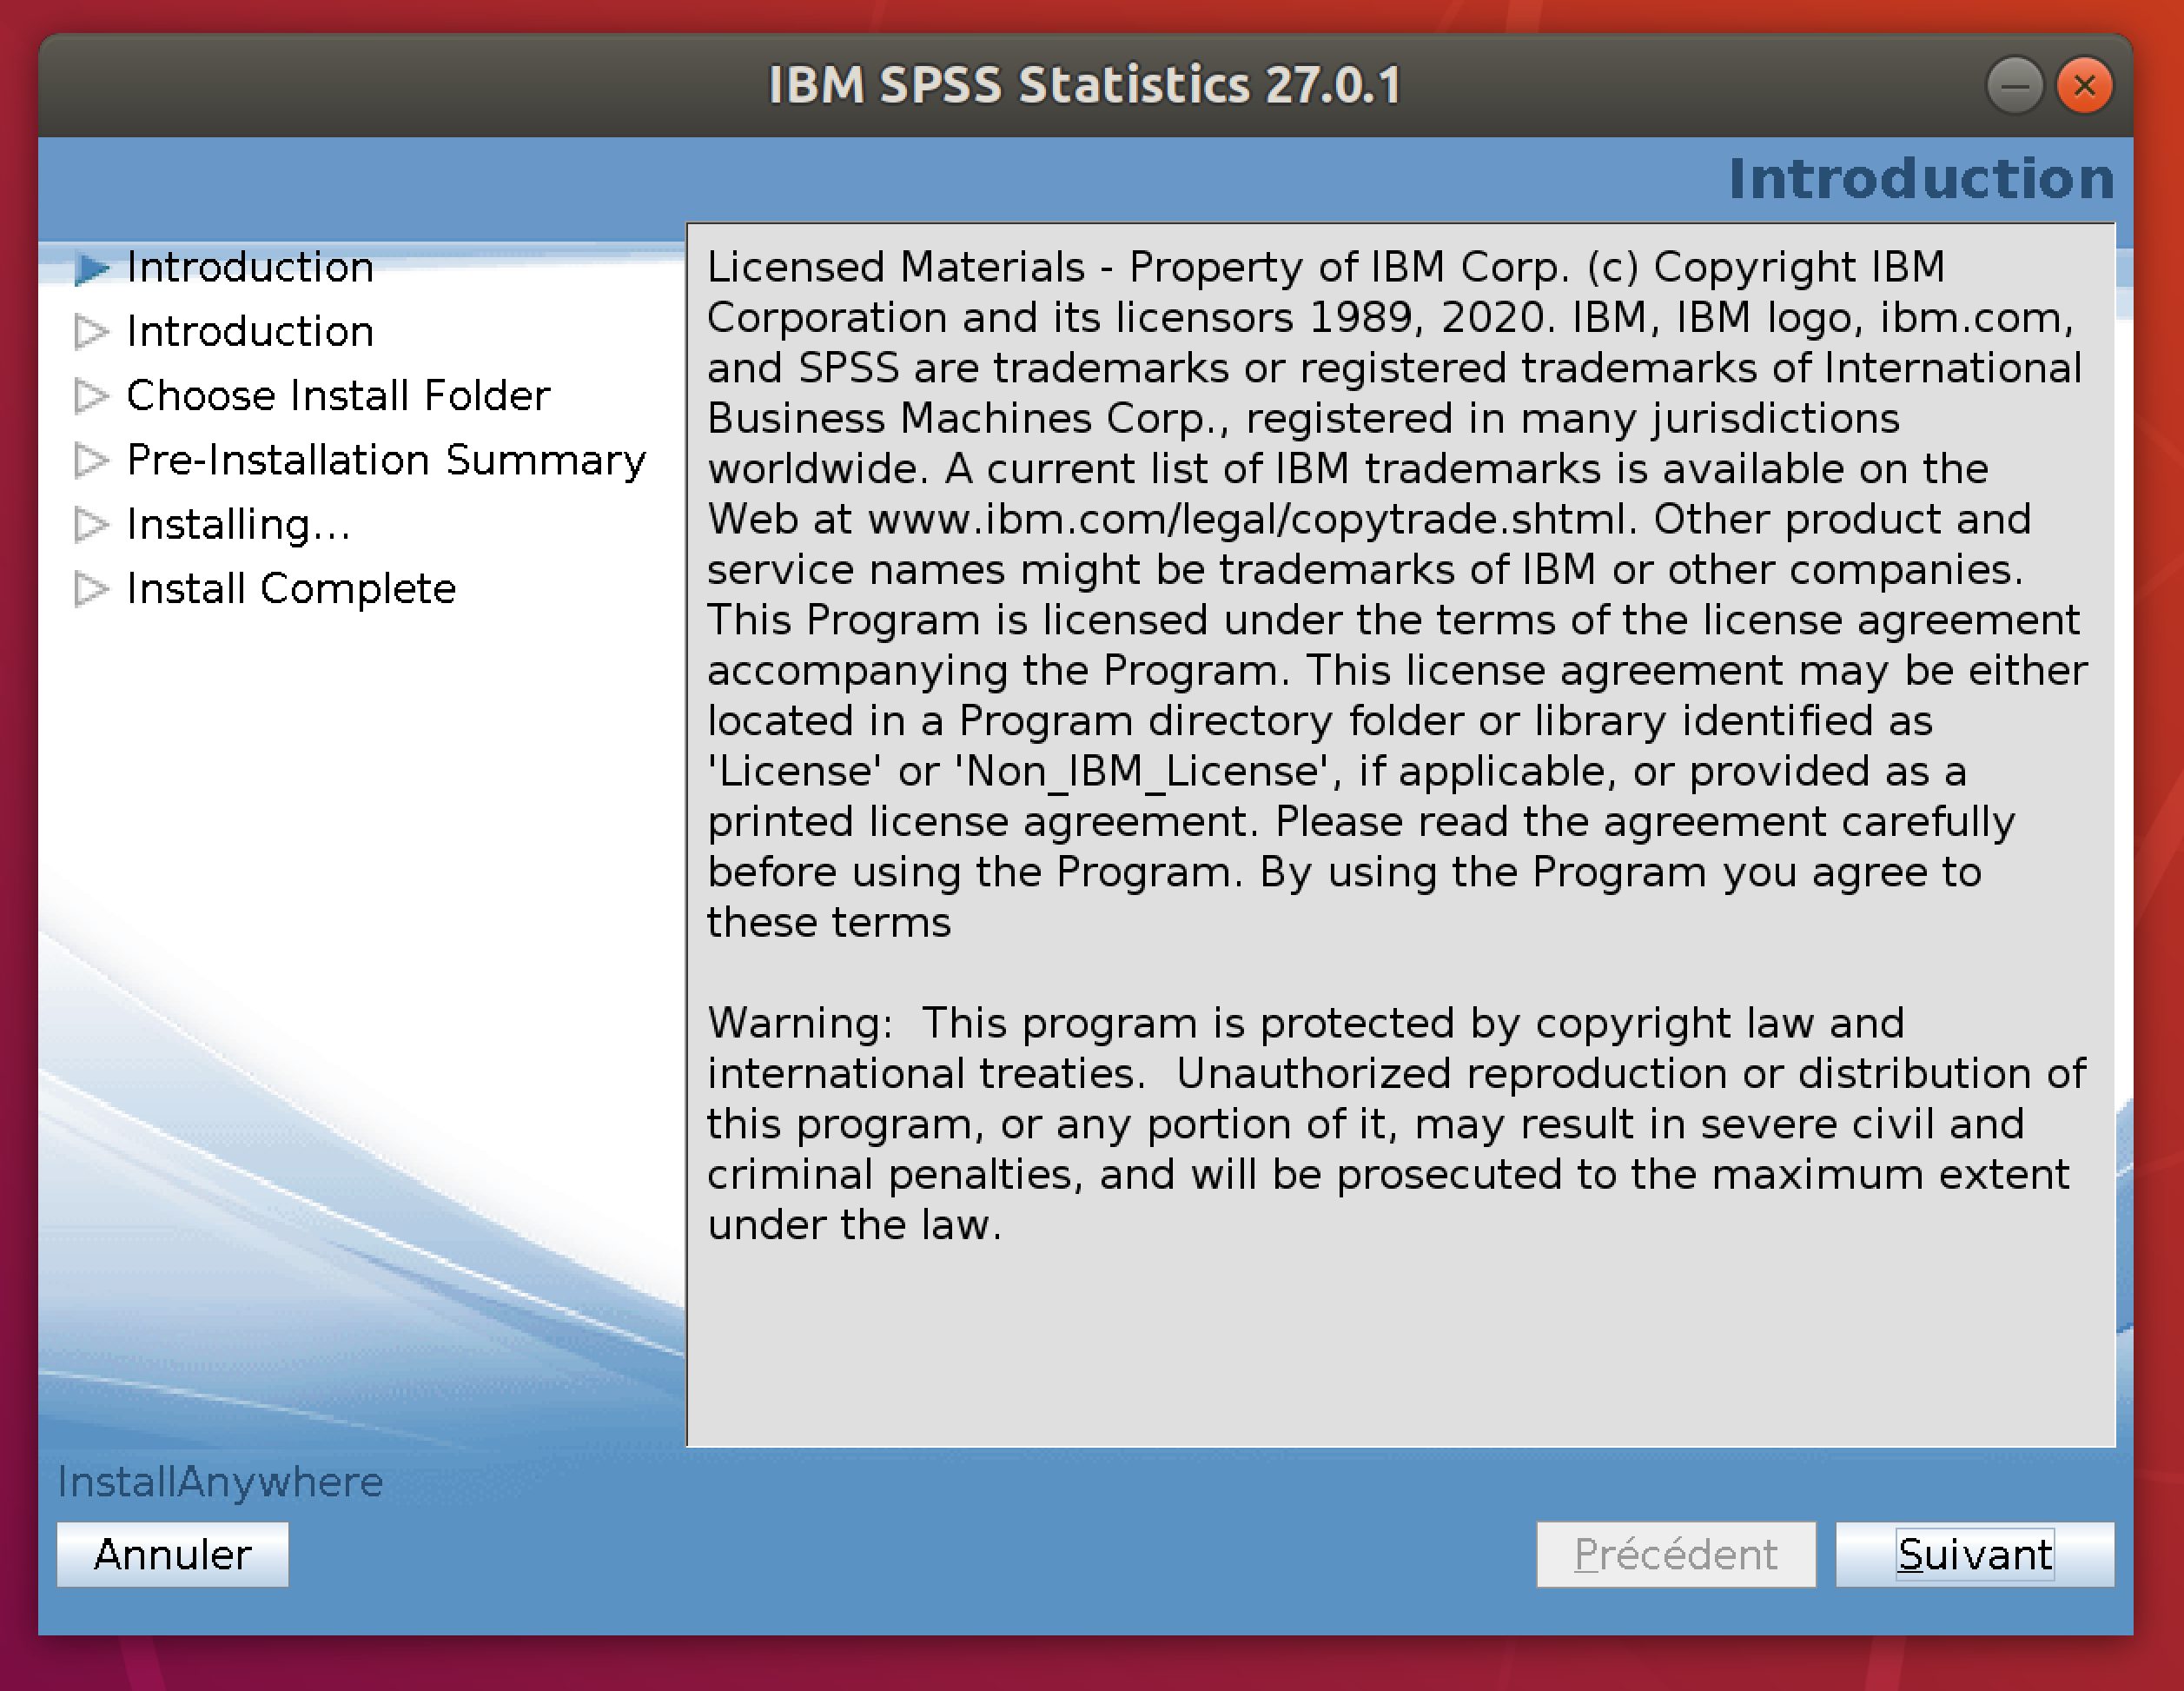 spss27_linux_00003.png